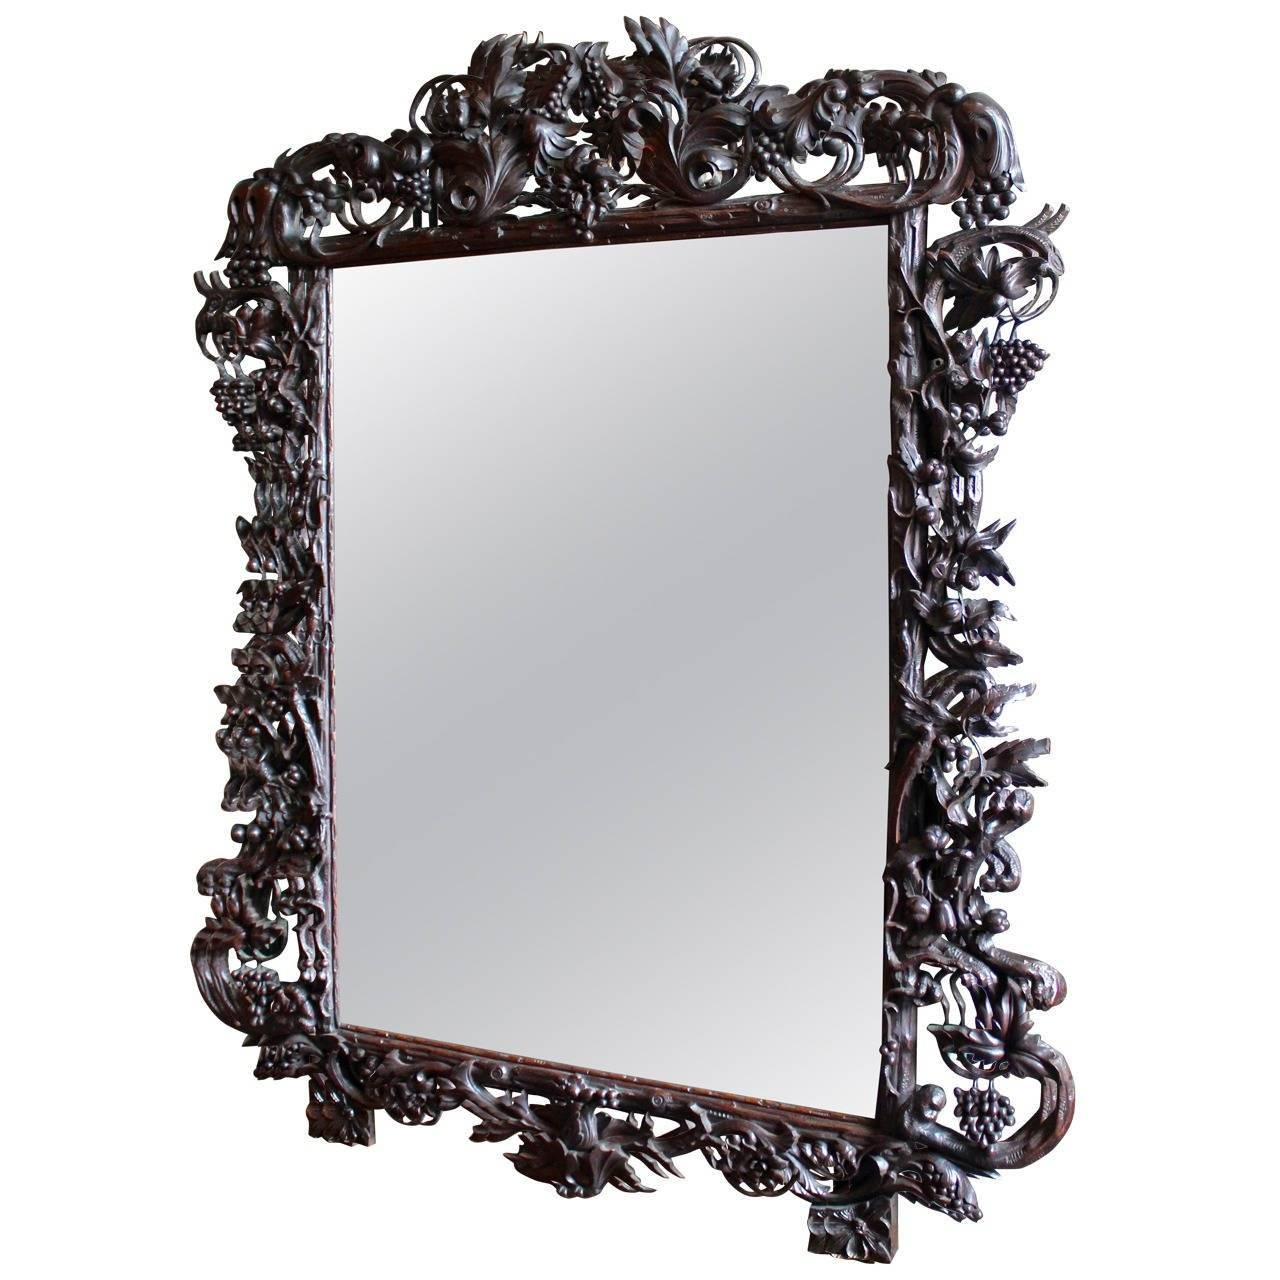 Late 19Th Century Ornate Large Black Forest French Mirror At 1Stdibs intended for Black Ornate Mirrors (Image 6 of 15)